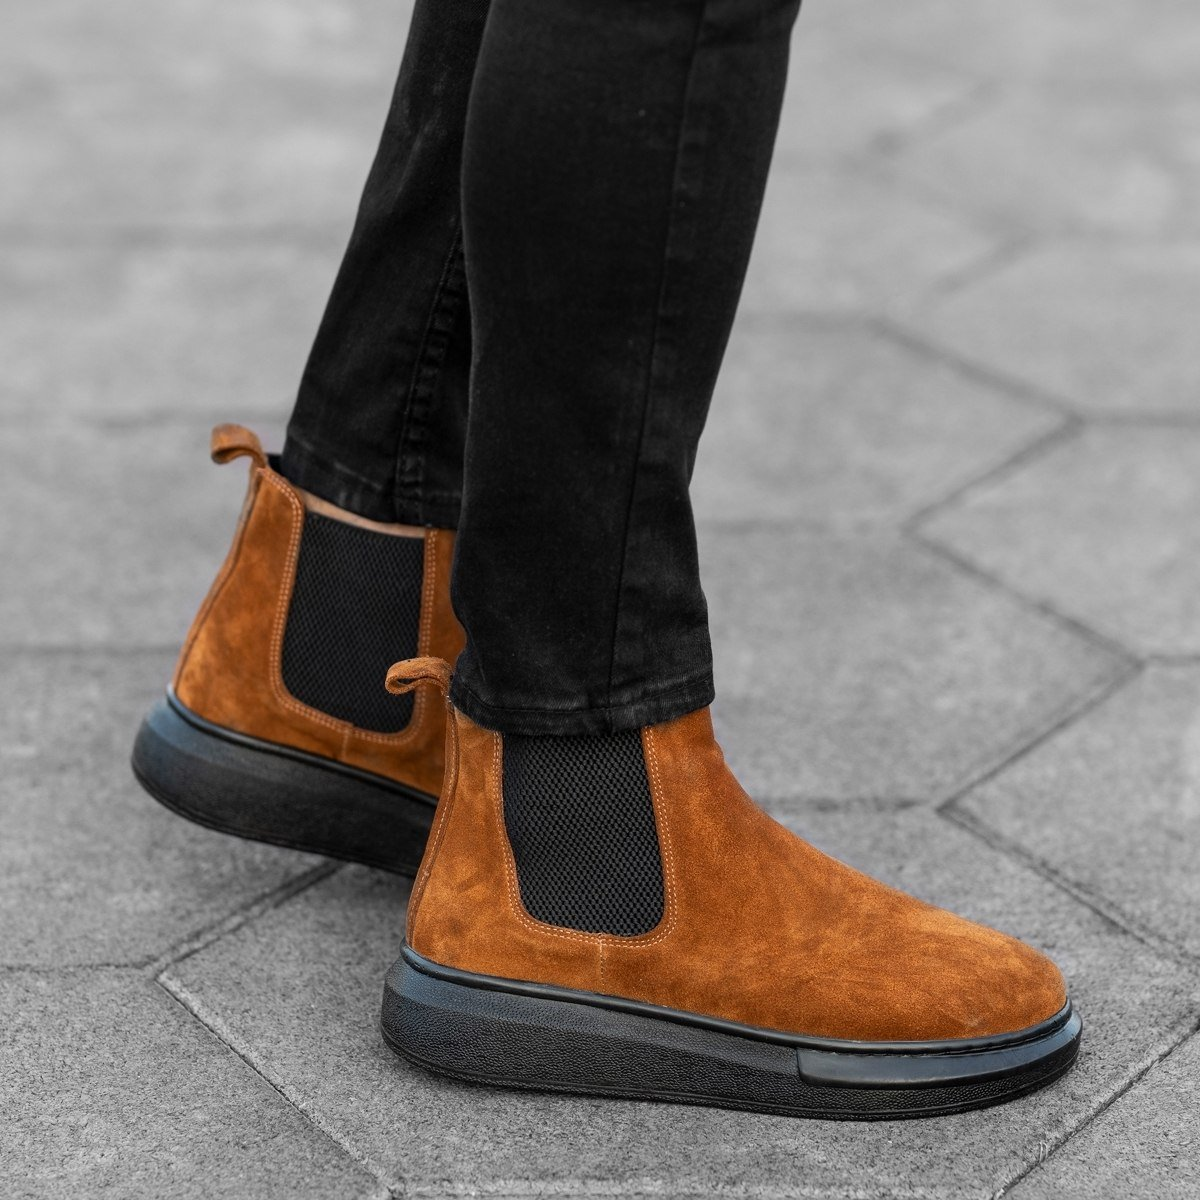 Genuine-Suede Hype Sole Chelsea Boots In Brown Mv Premium Brand - 2